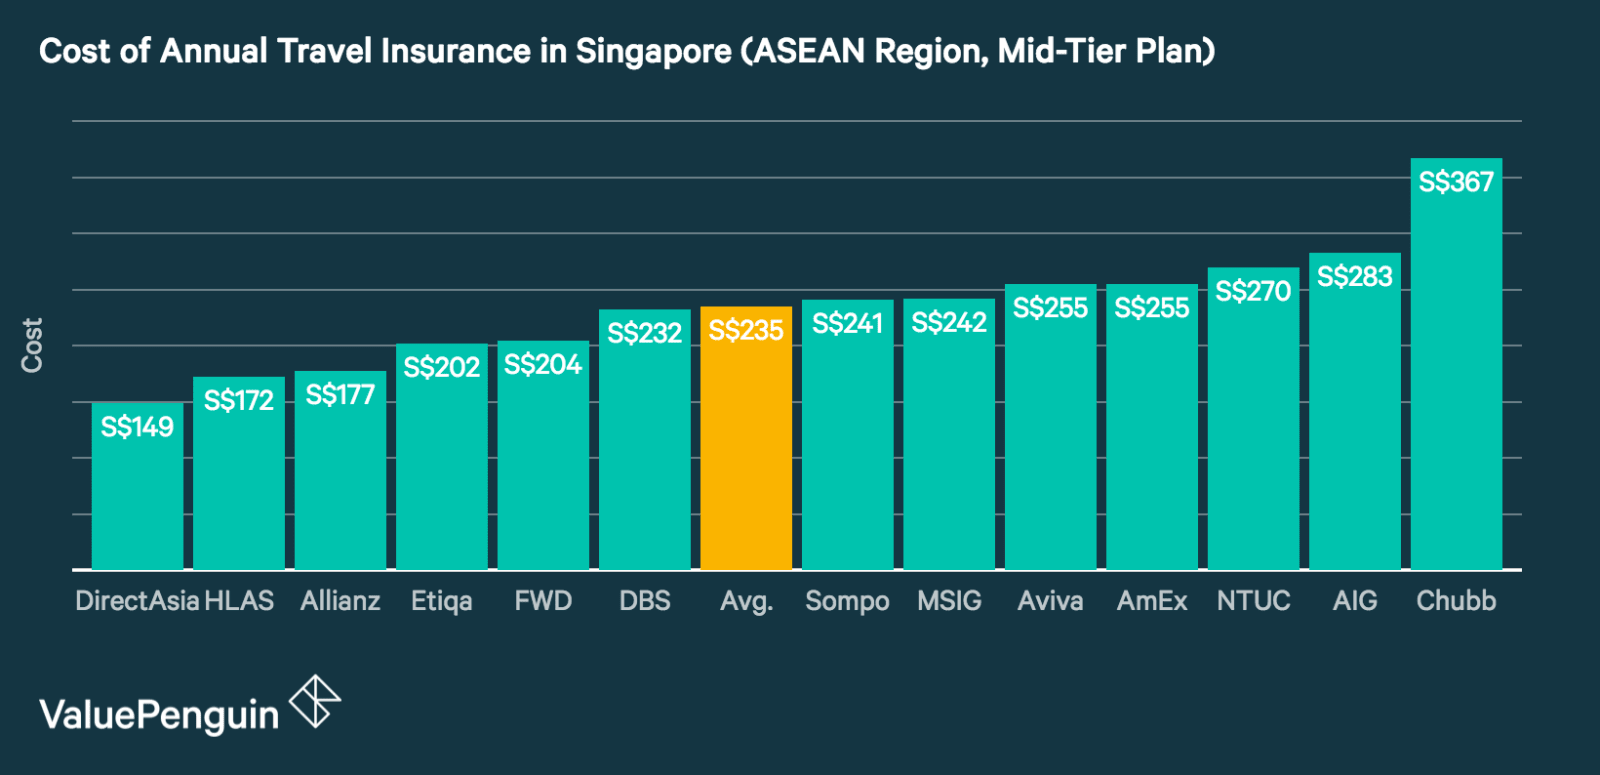 This graph shows the cheapest annual travel insurance plans for travel throughout the ASEAN region